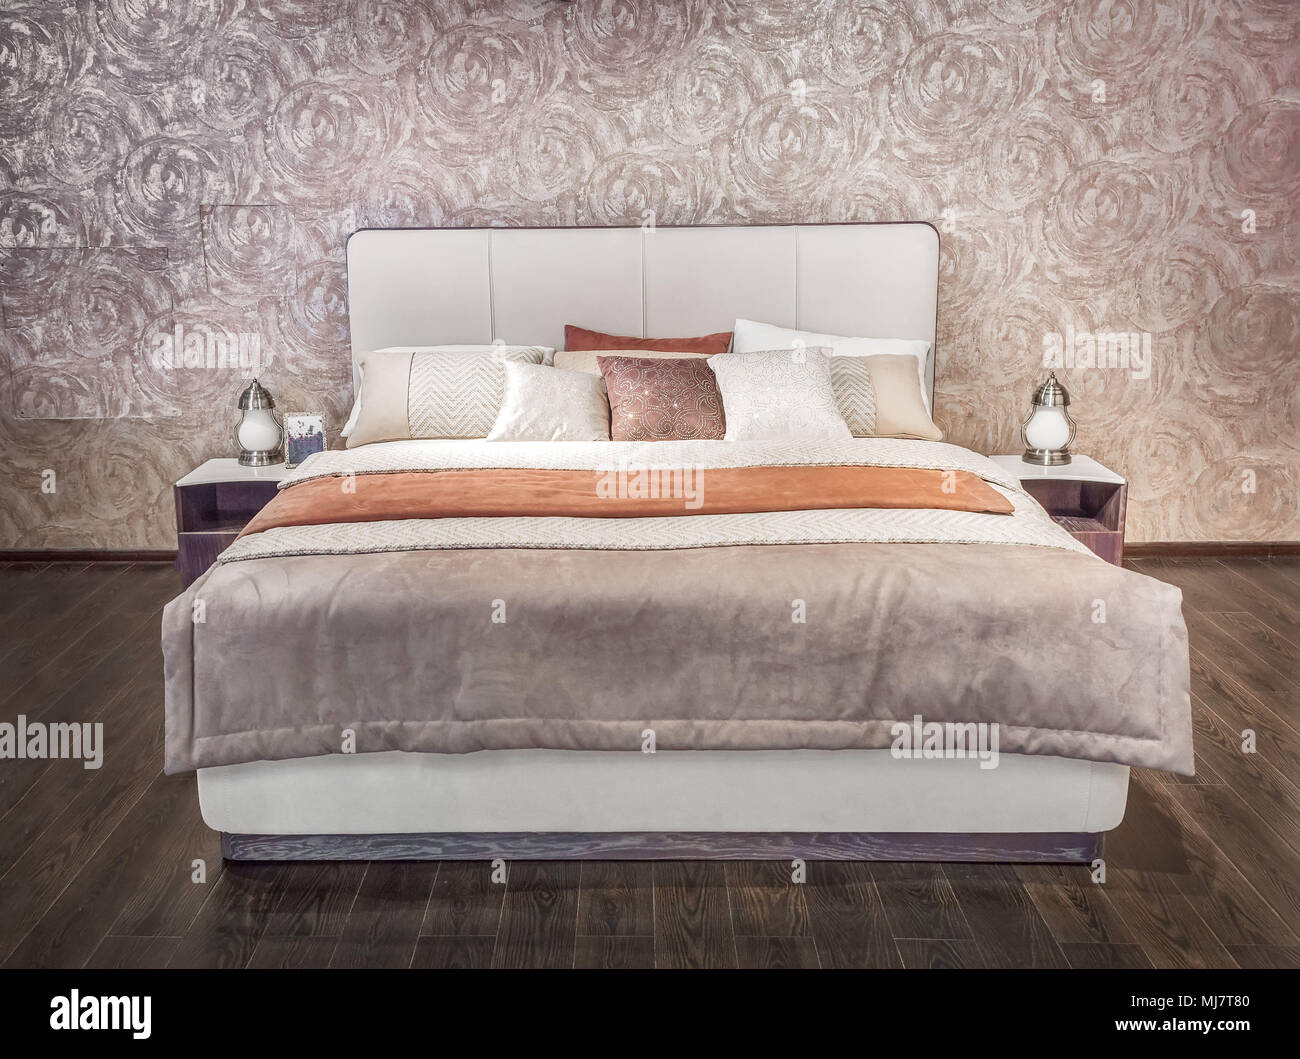 . Luxury gray beige modern bed furniture with patterned bed with